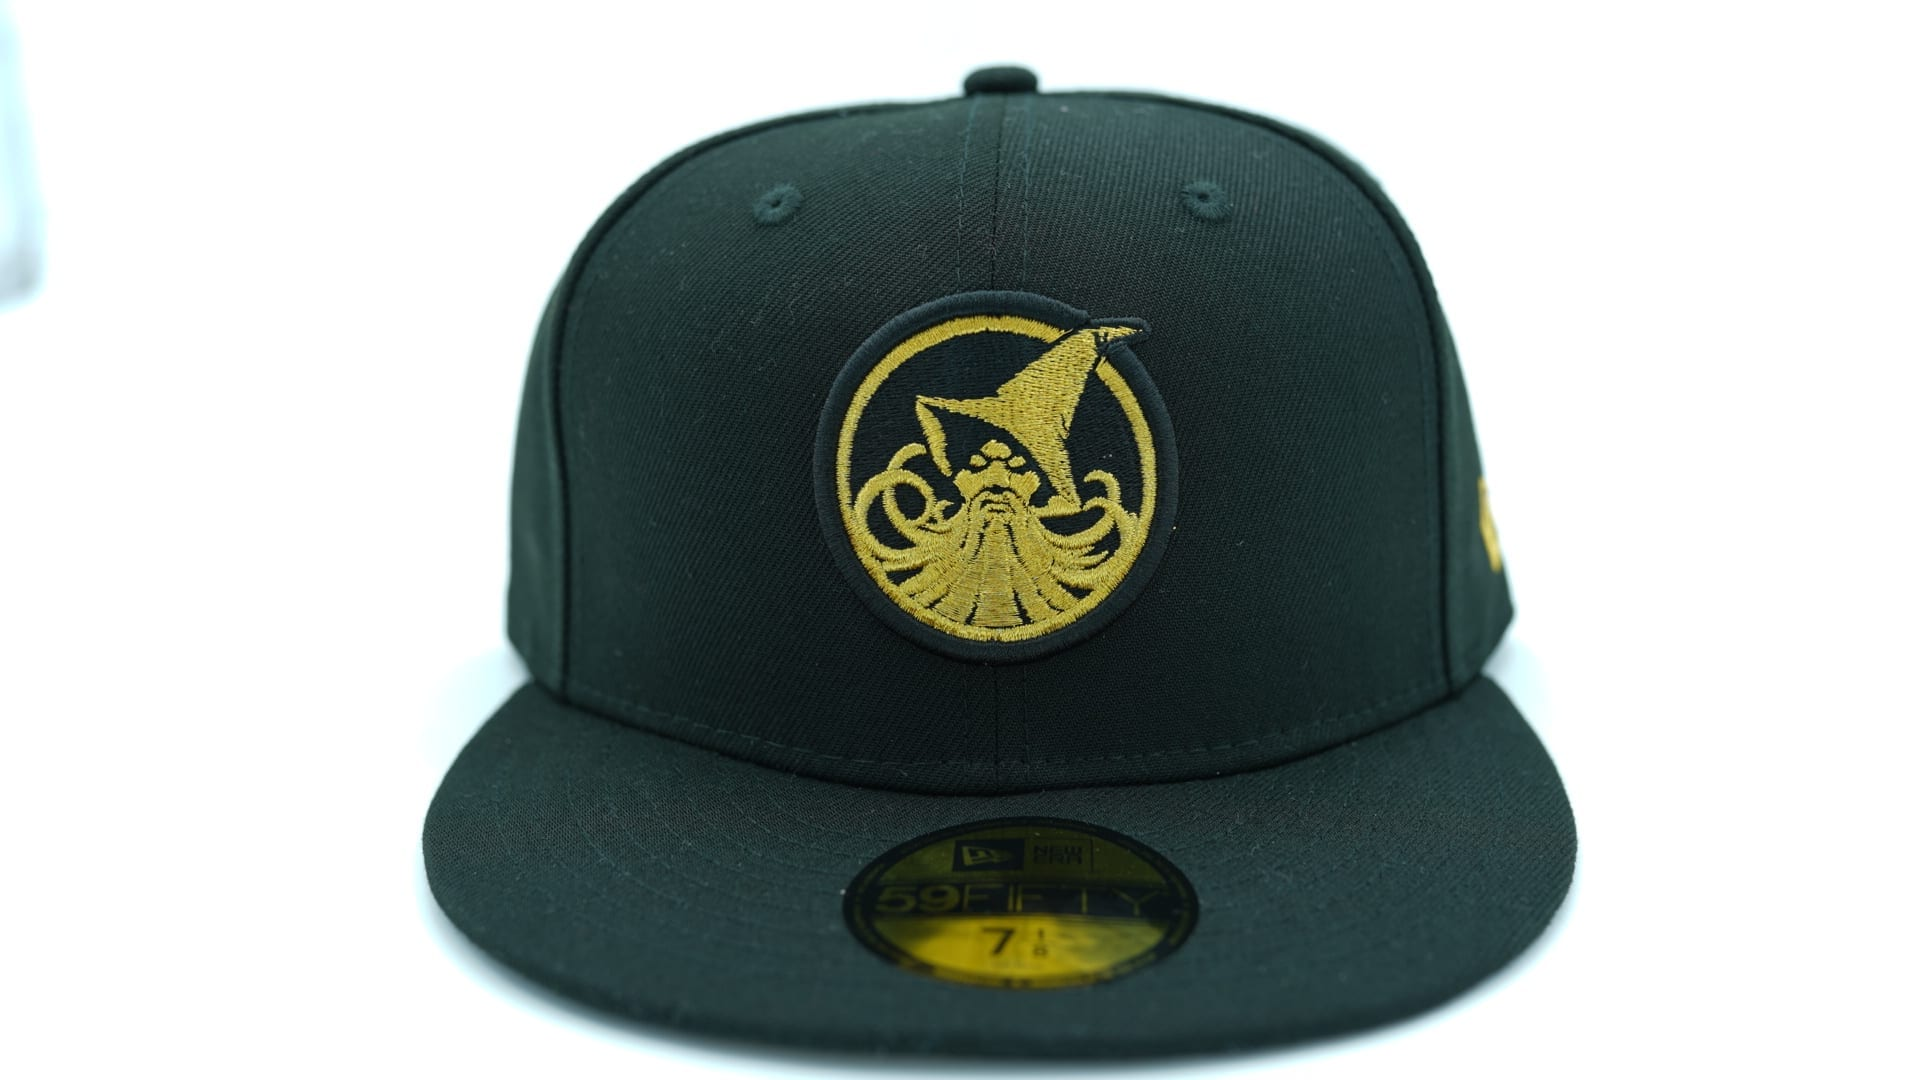 tattoo-7union-Baseball-Cap-hat-cap_1. Japanese cap company 7UNION pulls out